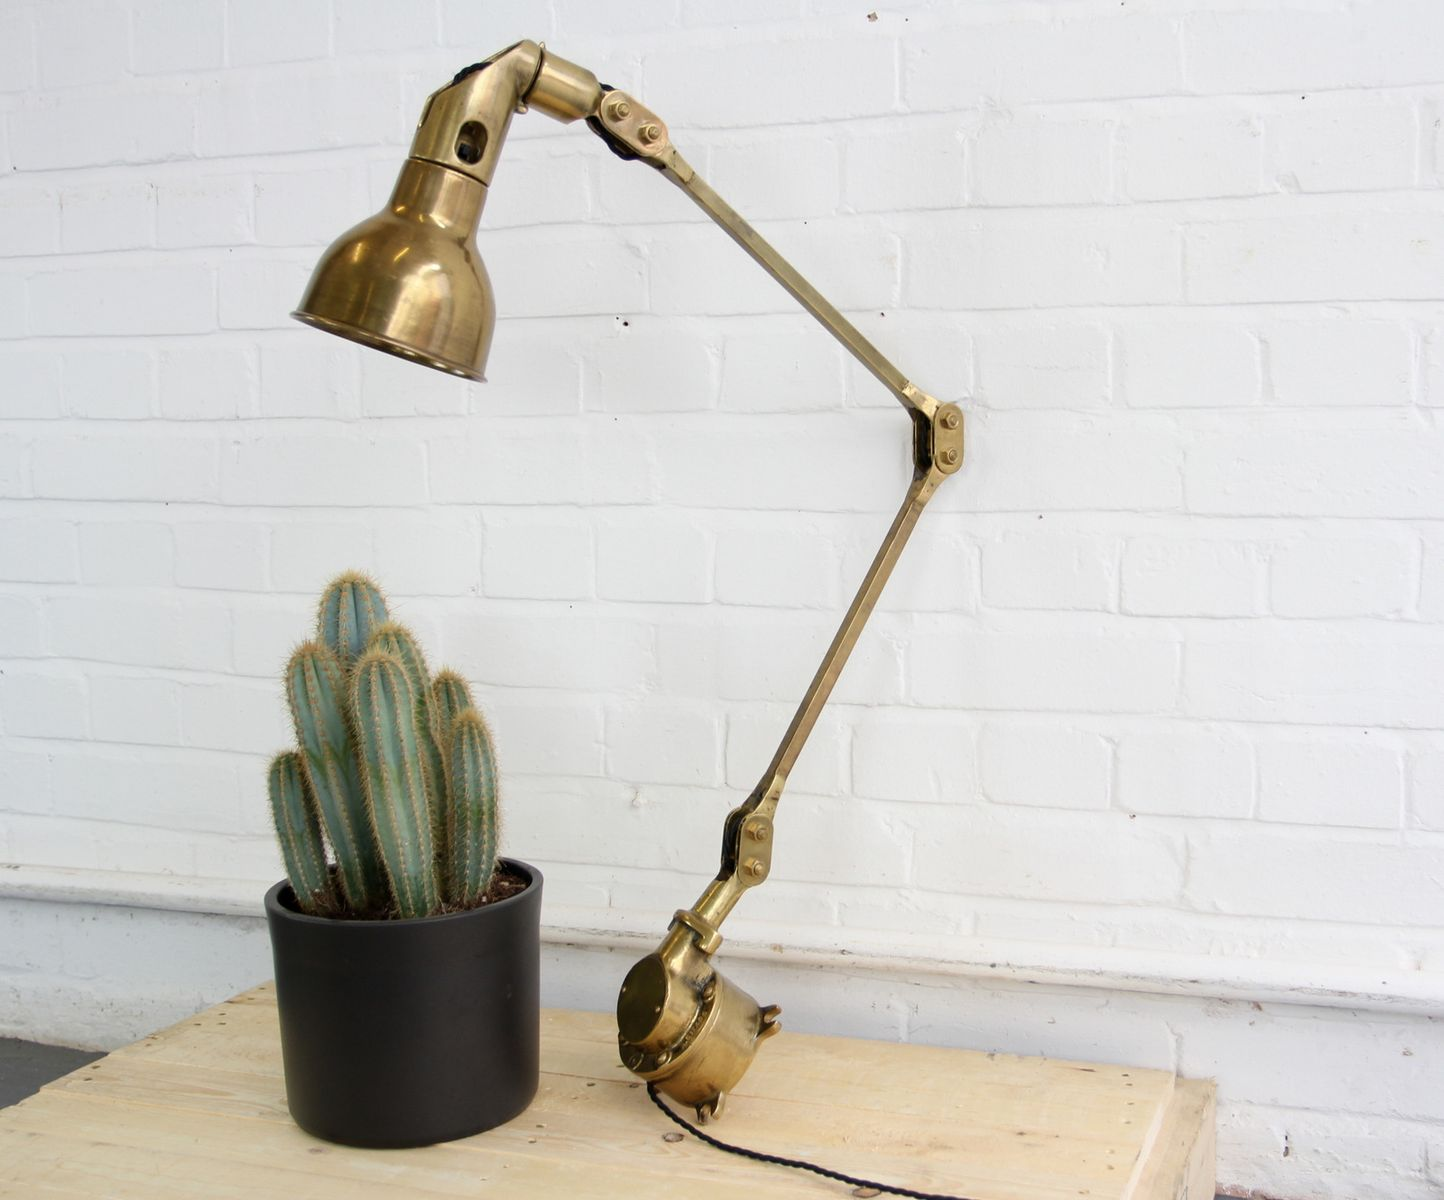 Solid Brass Task Lamp By Mek Elek, 1940s